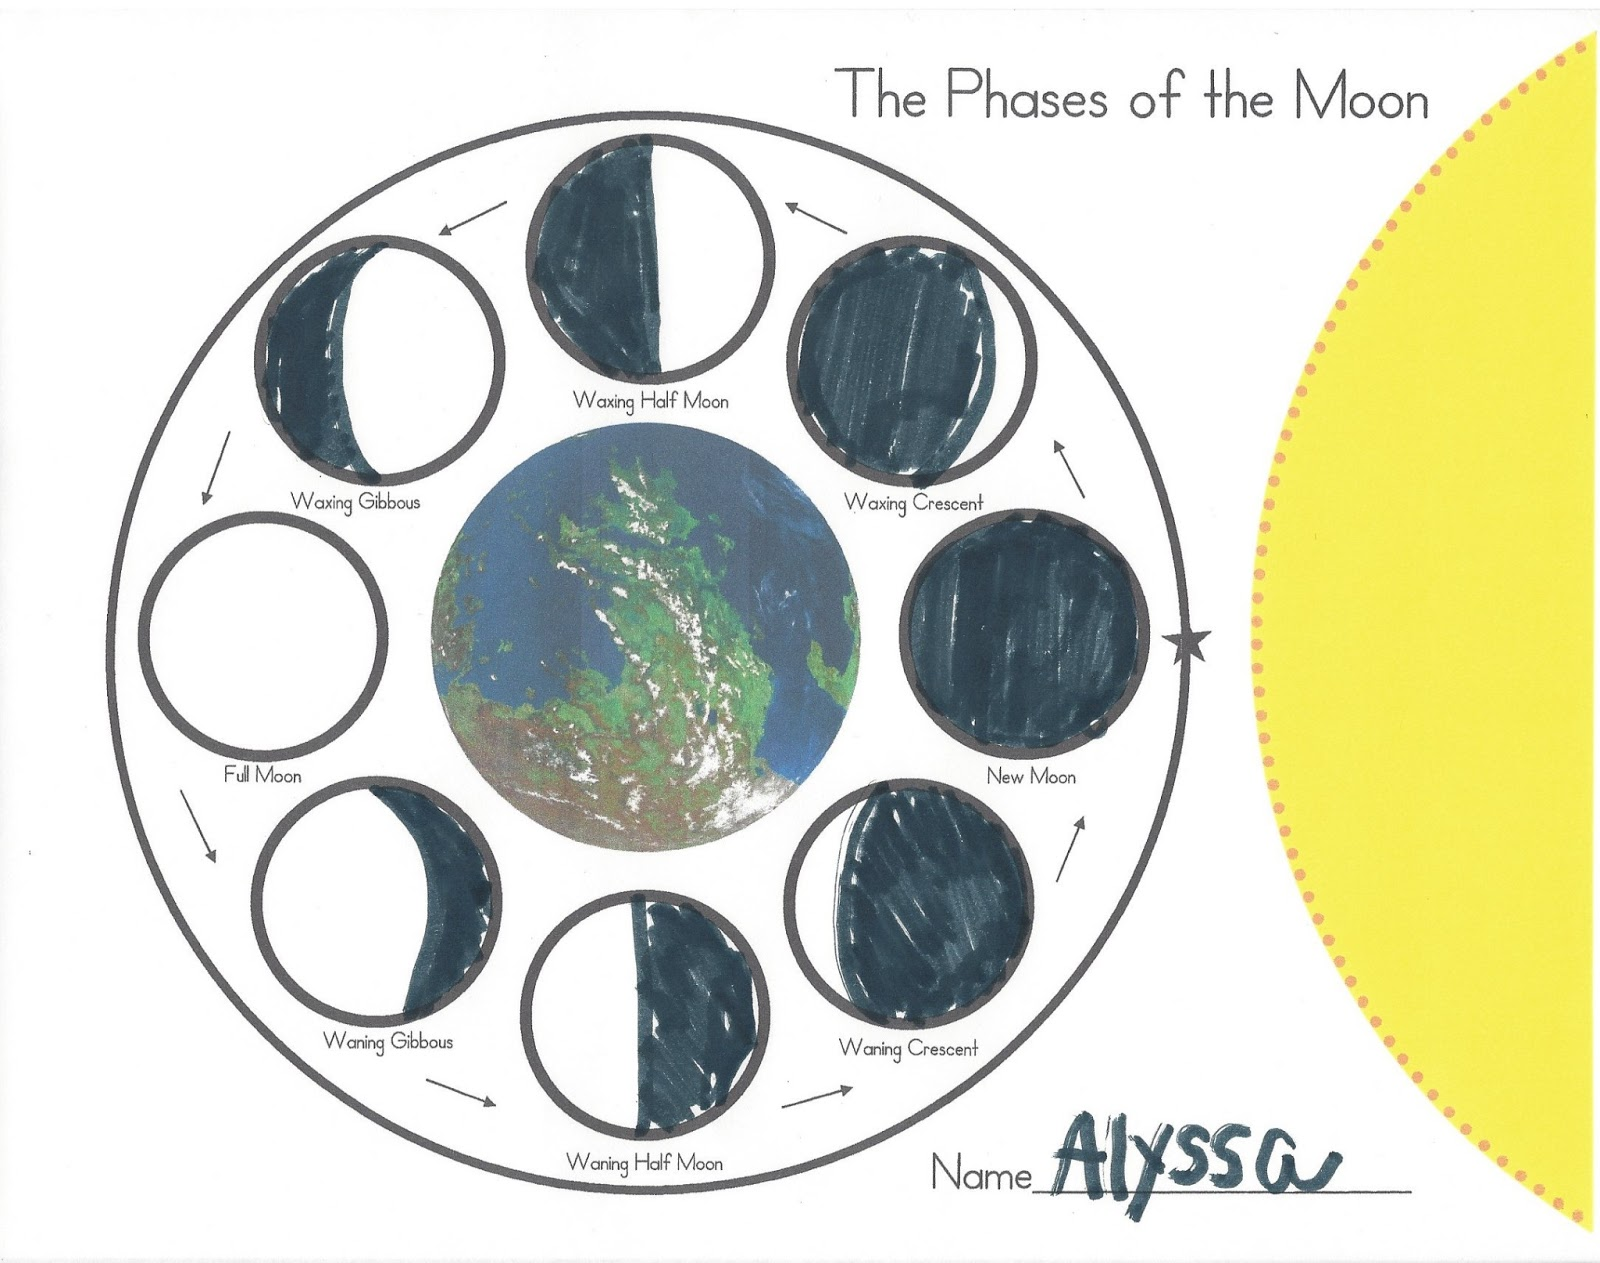 Homework help phases moon